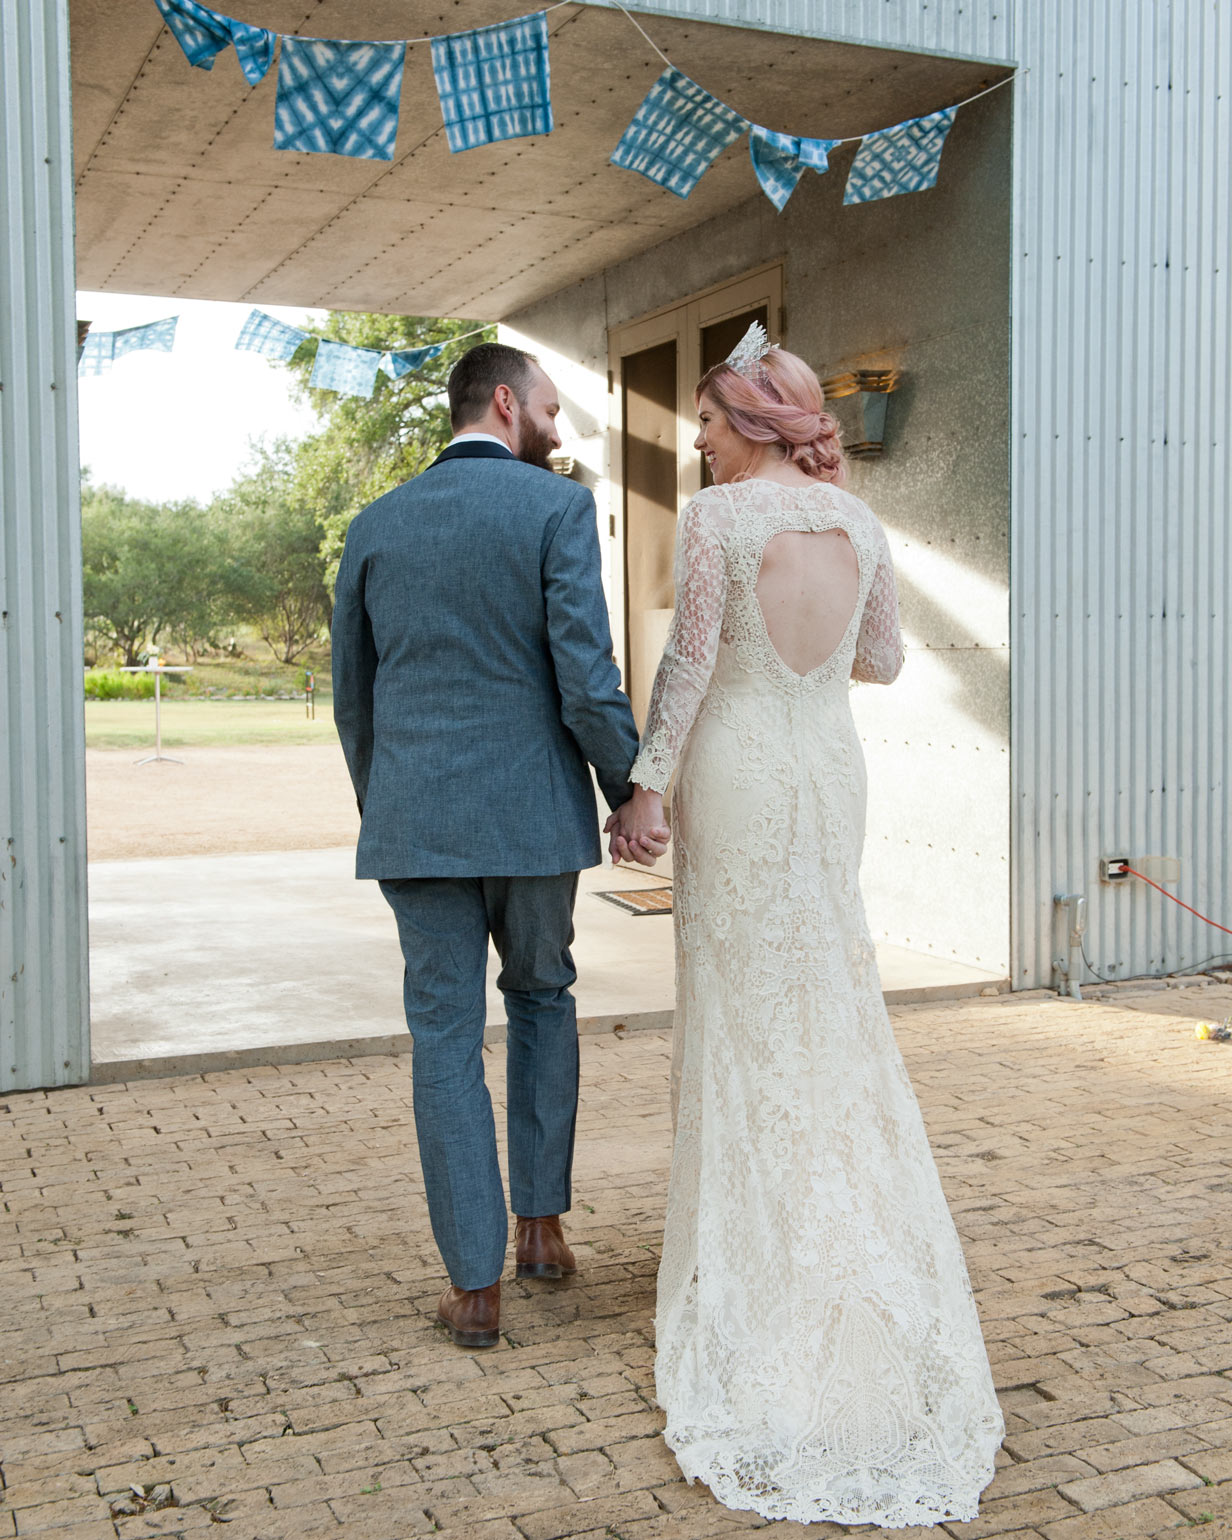 abby-chris-wedding-texas-couple-0156-s112832-0516.jpg